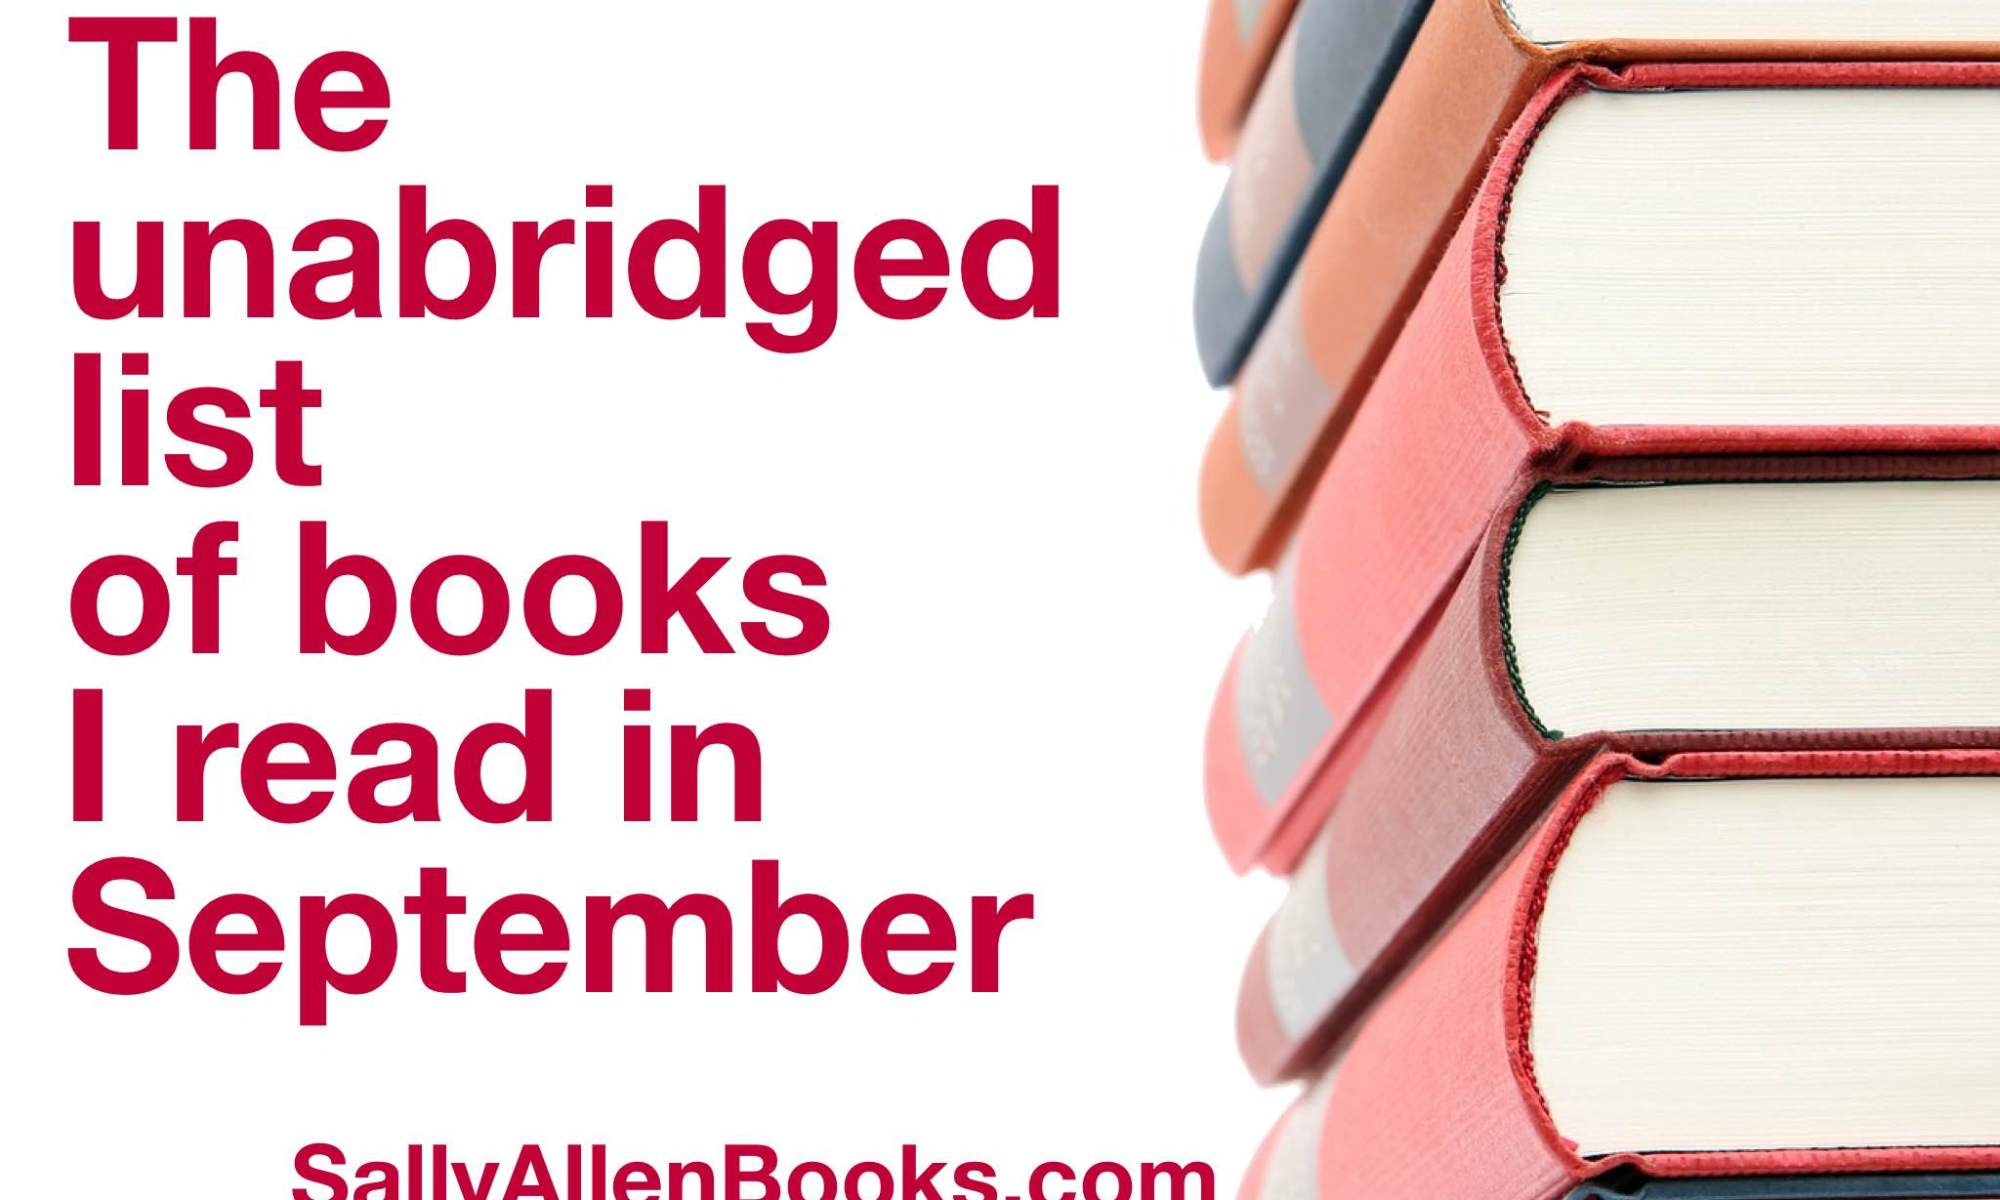 My September book tally isn't a long list. But the books I read were varied and highly satisfying, though in very different ways. And now, on to October!